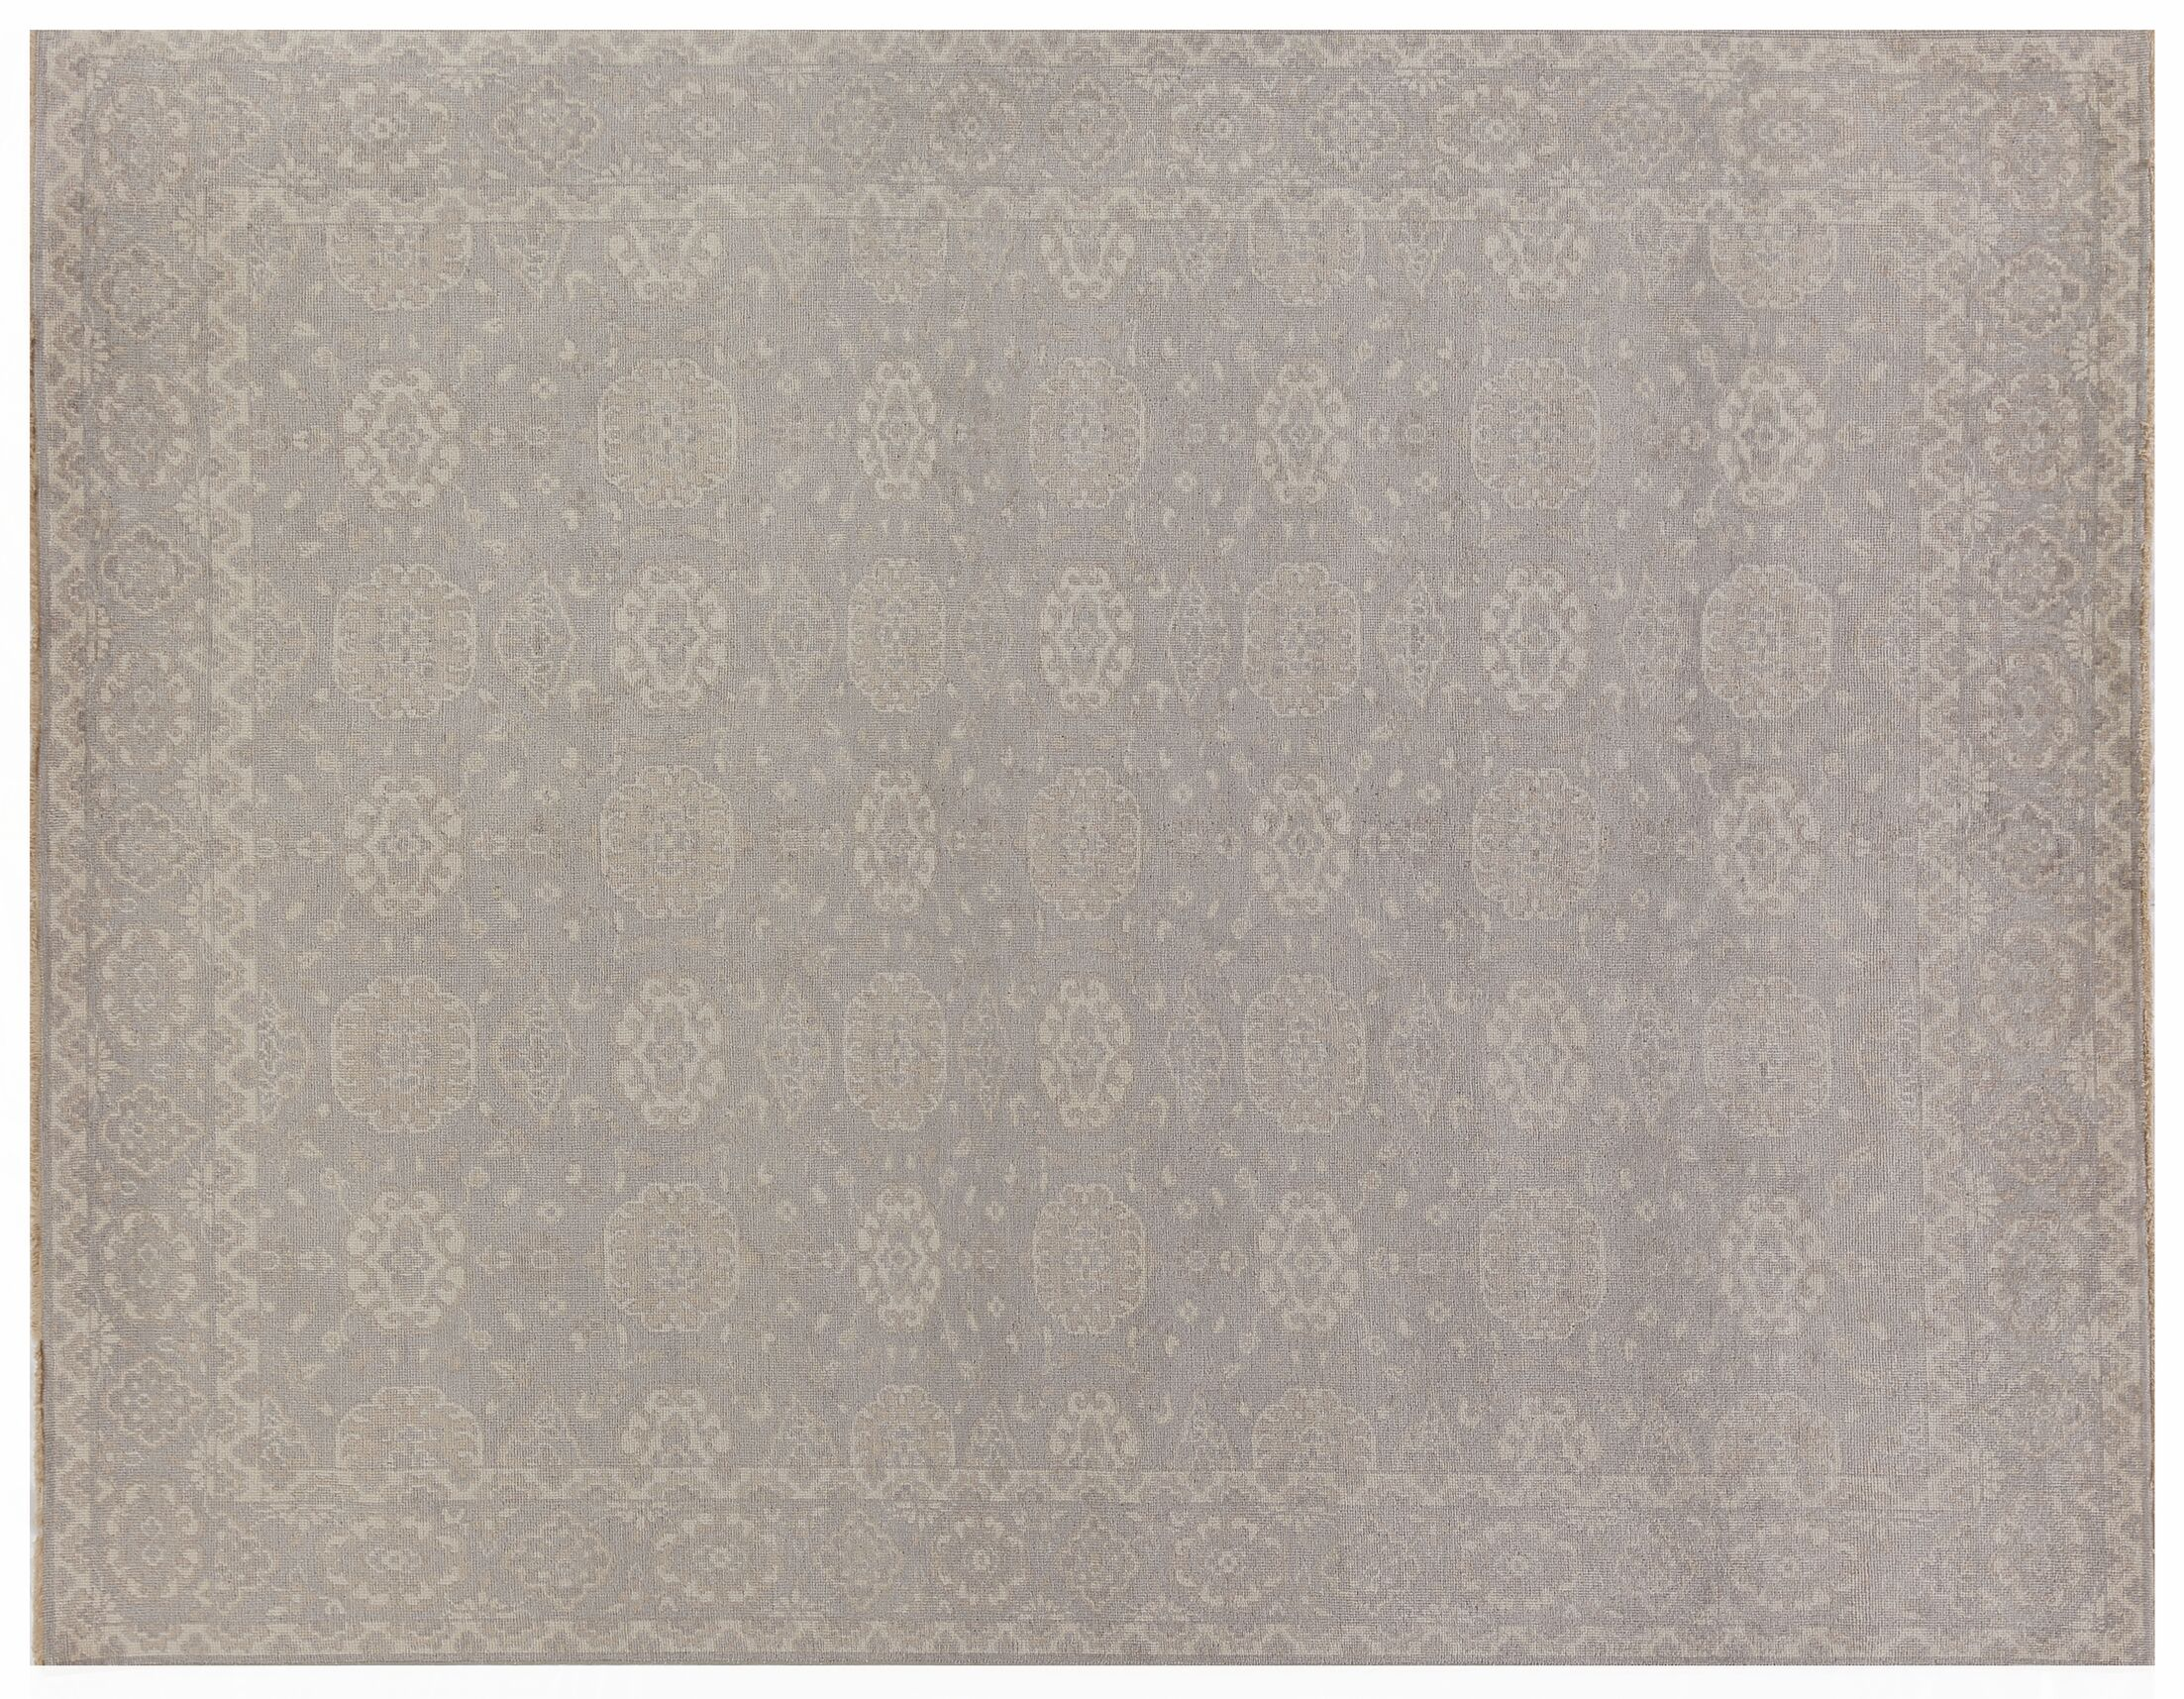 Restoration Hand-Knotted Wool Beige Area Rug Rug Size: Rectangle10' x 14'